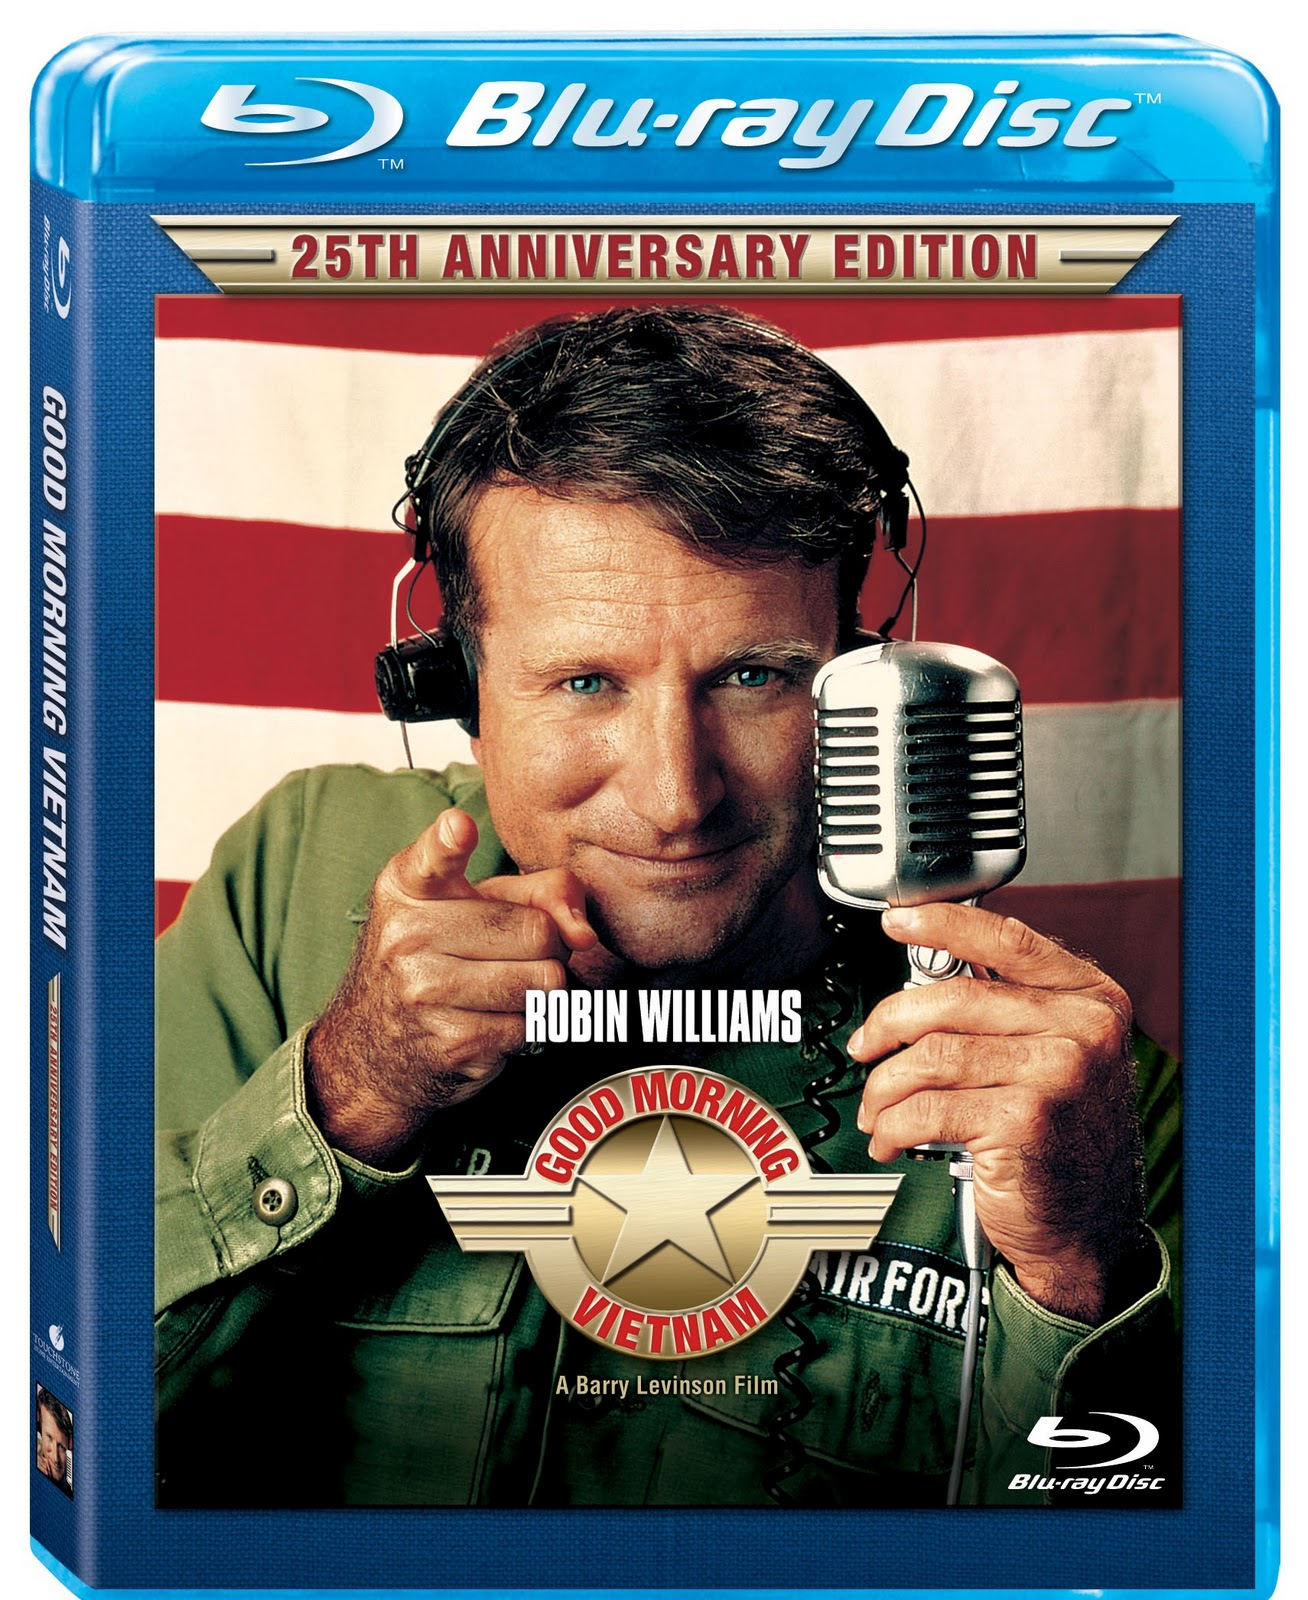 Good Morning Vietnam Kanye : Dvd lounge robin williams times two forces of geek